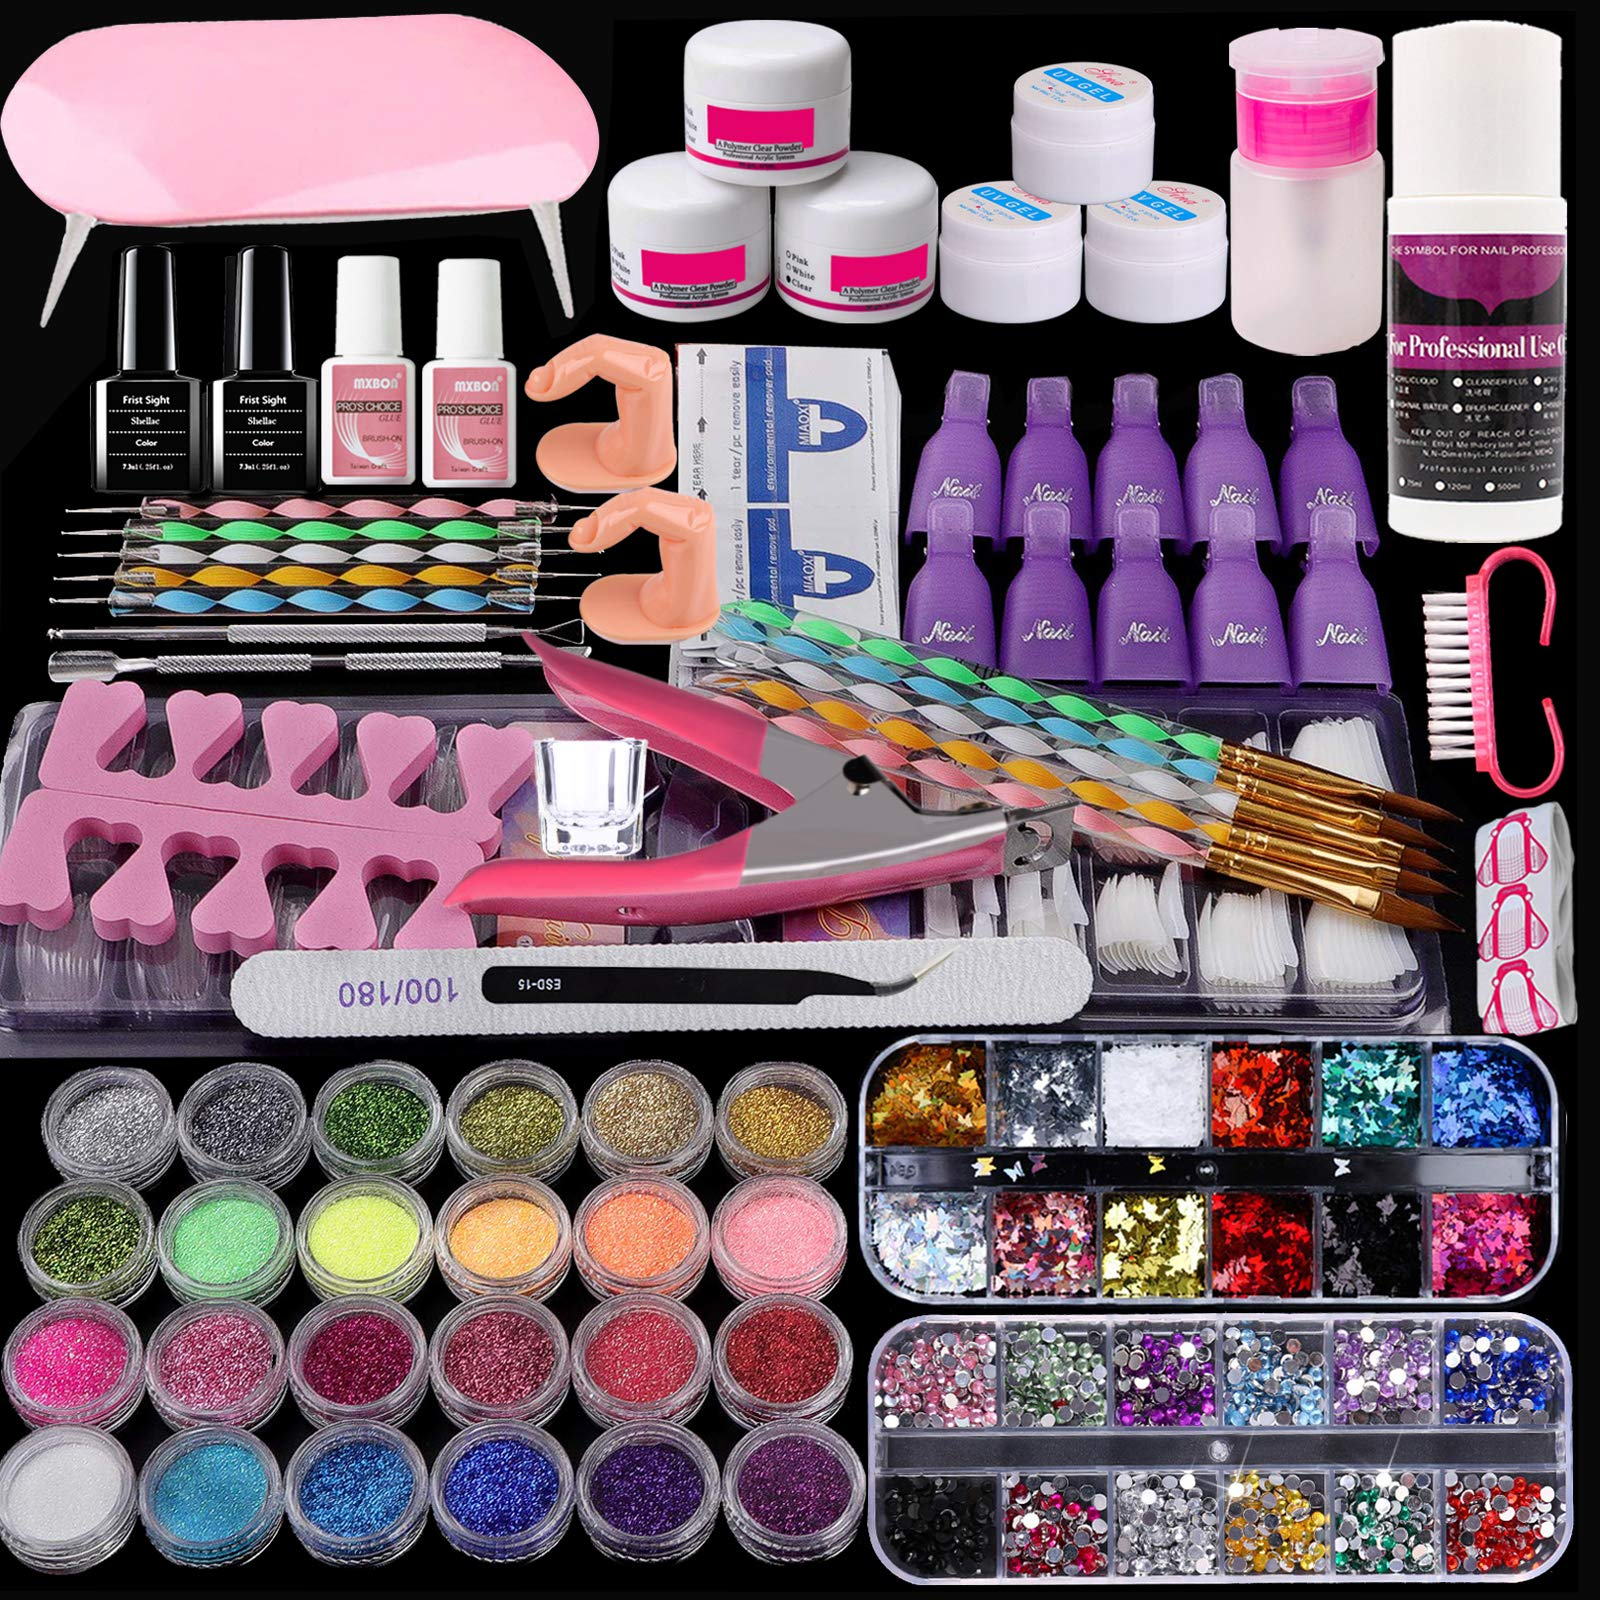 Acrylic Nail Kit Set, COOSA Acrylic Nail Art Decoration Professional DIY Gel Nail Kit with Nail Dryers